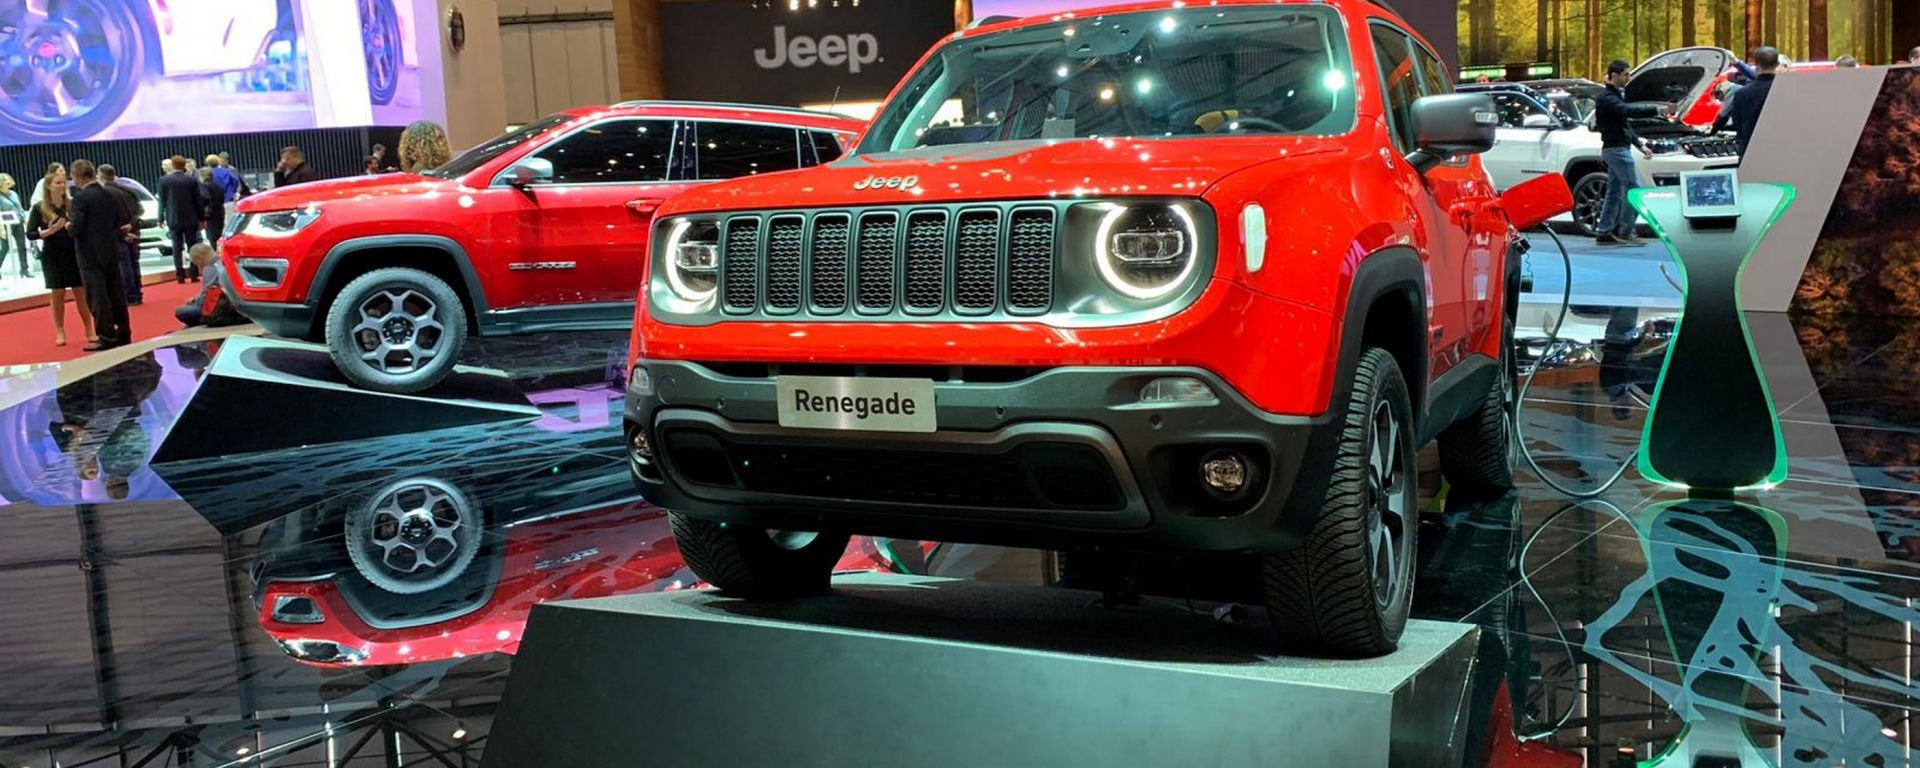 Jeep Compass e Renegade plug-in